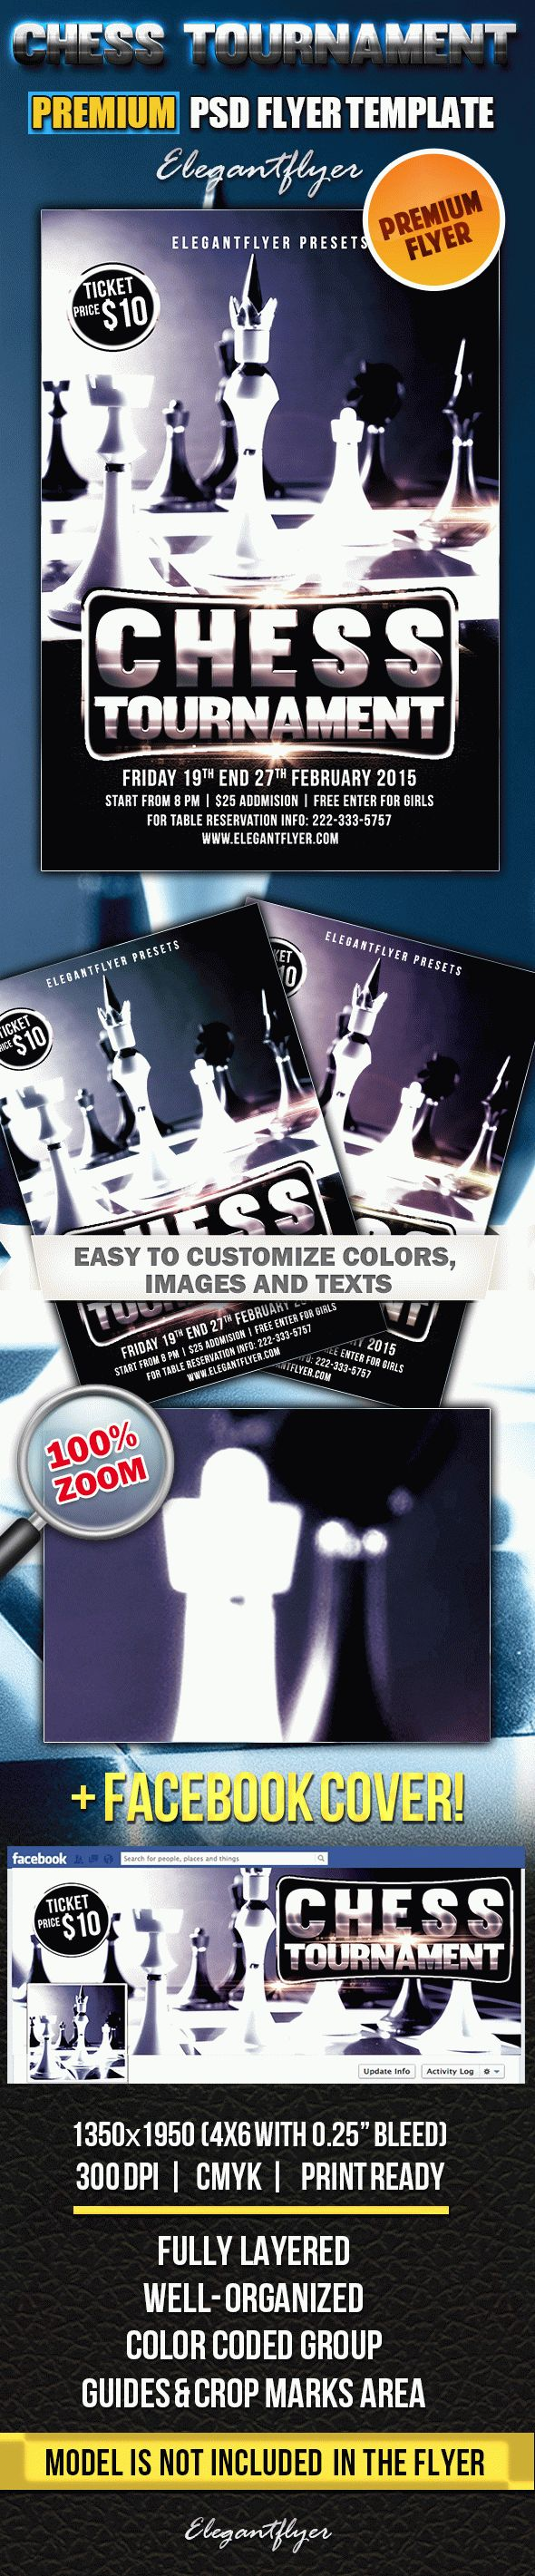 chess tournament  u2013 psd flyer templates  u2013 by elegantflyer